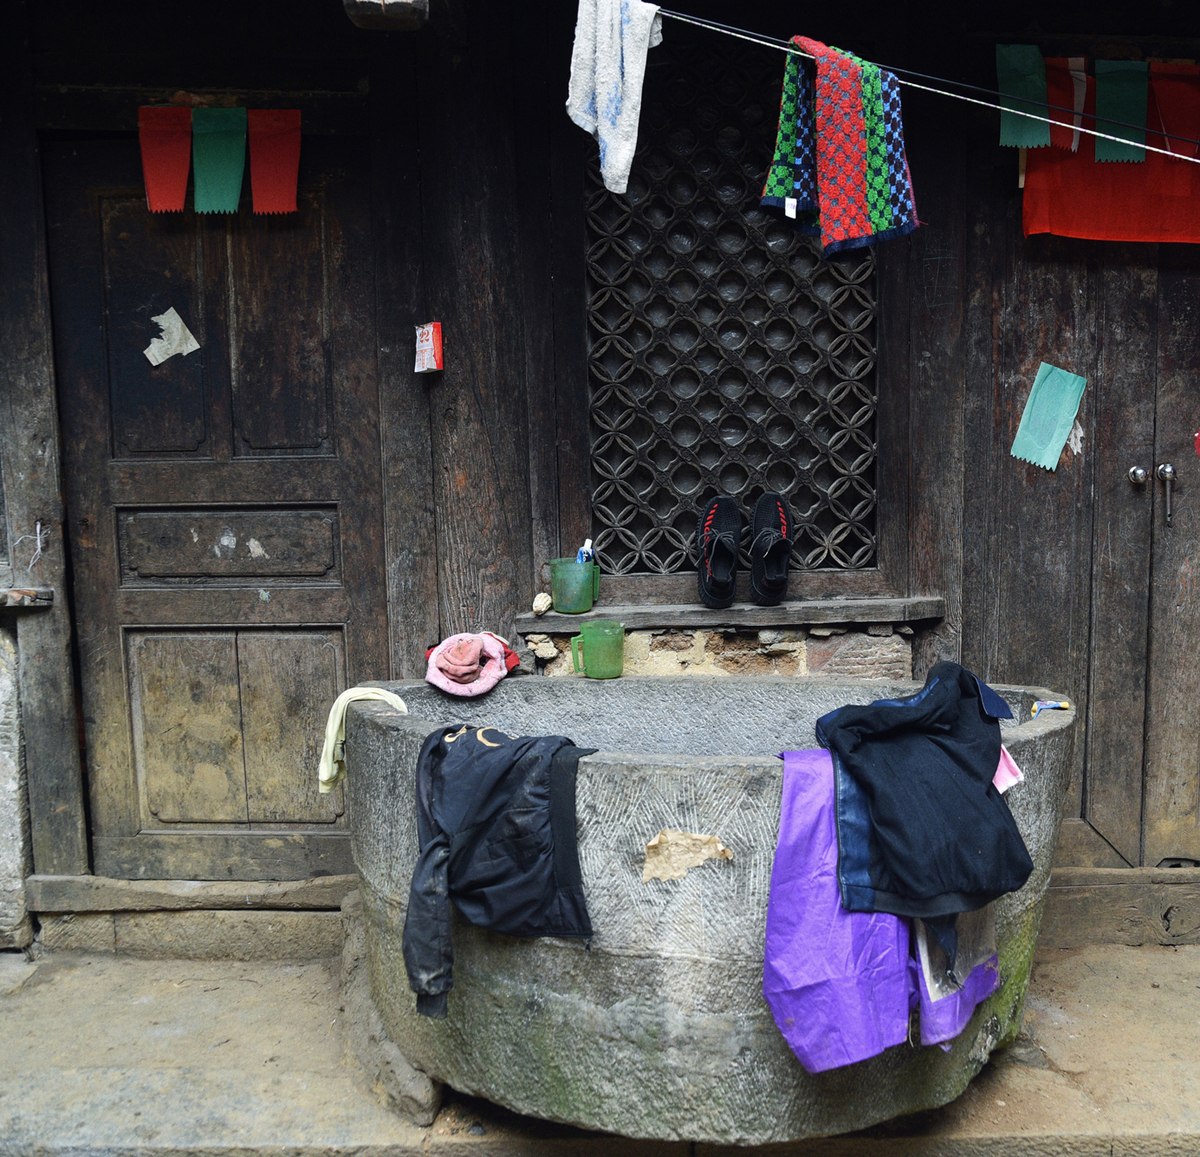 An ancient house a modern mystery in Vietnam's northern highlands